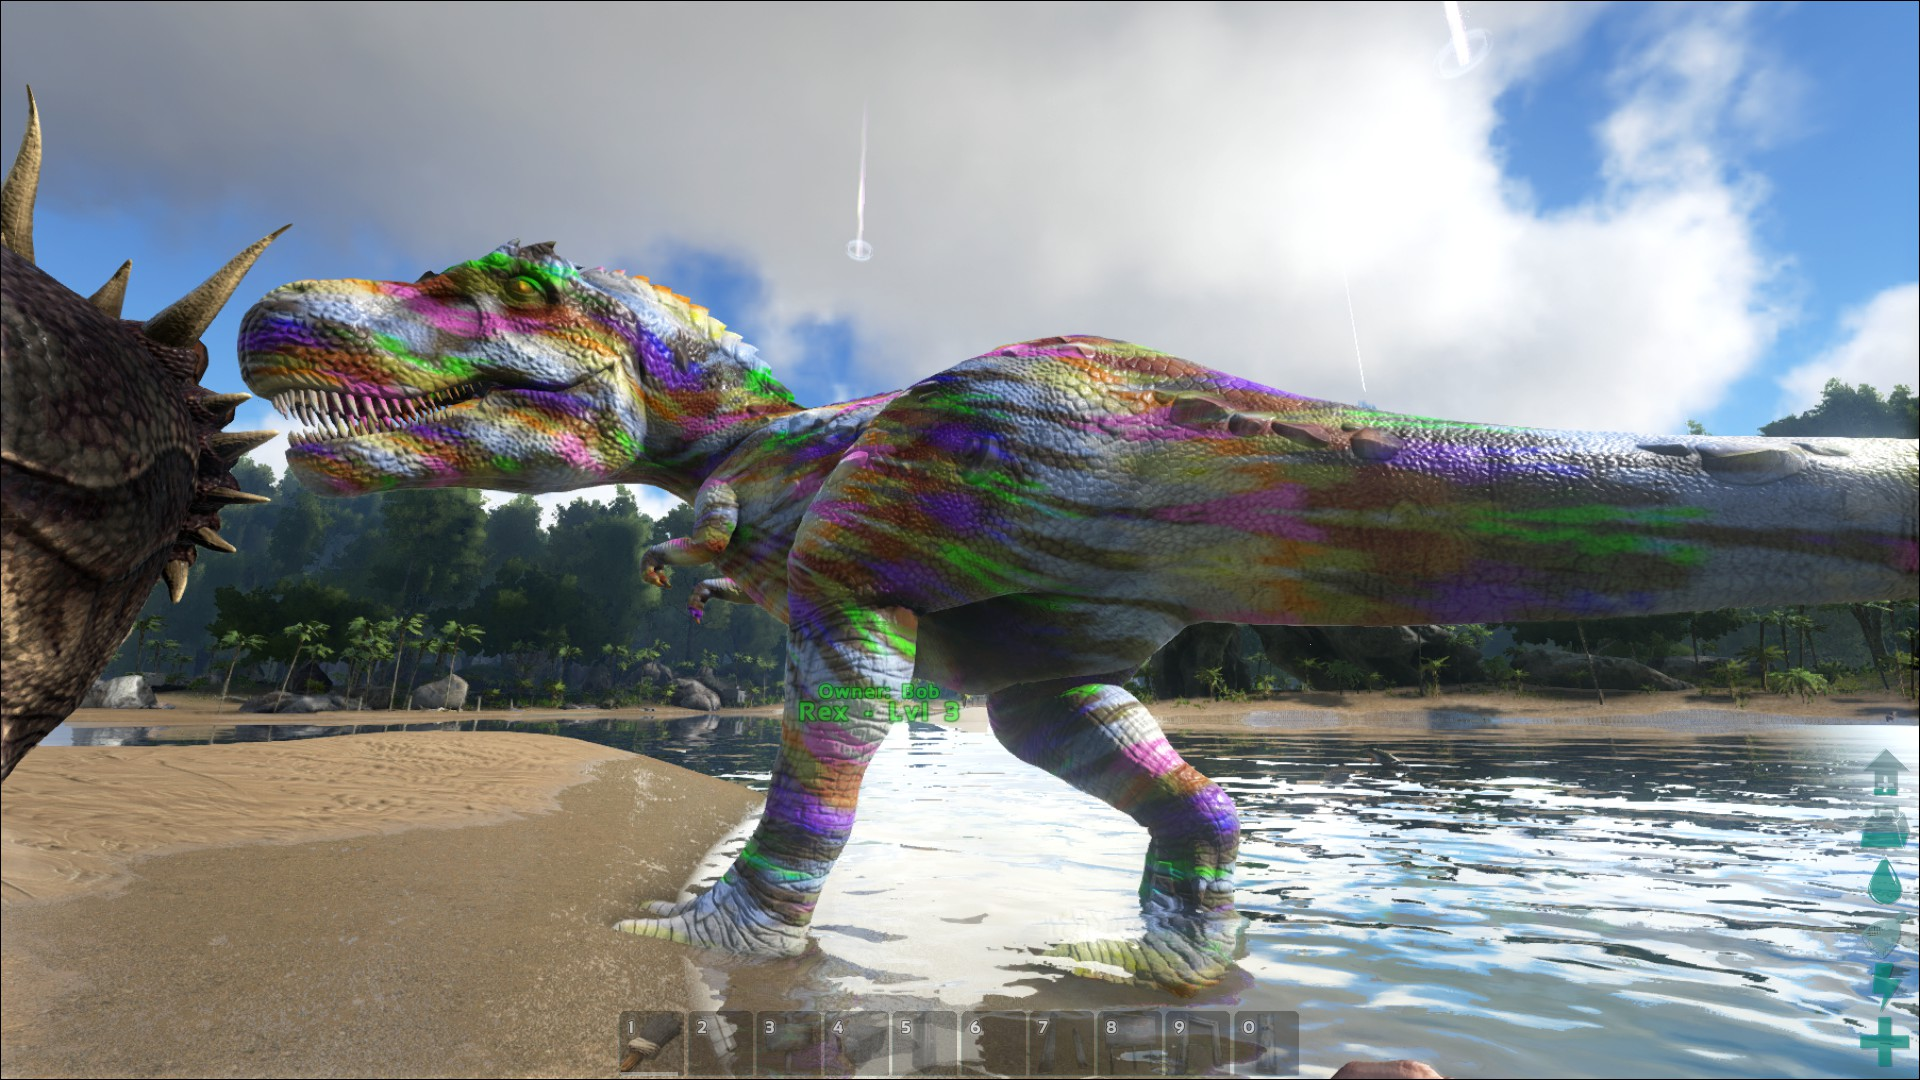 note for big dinosaurs 256x256 resolution is very low so its hard to get any real detail on them id reccomend just going for interesting colour